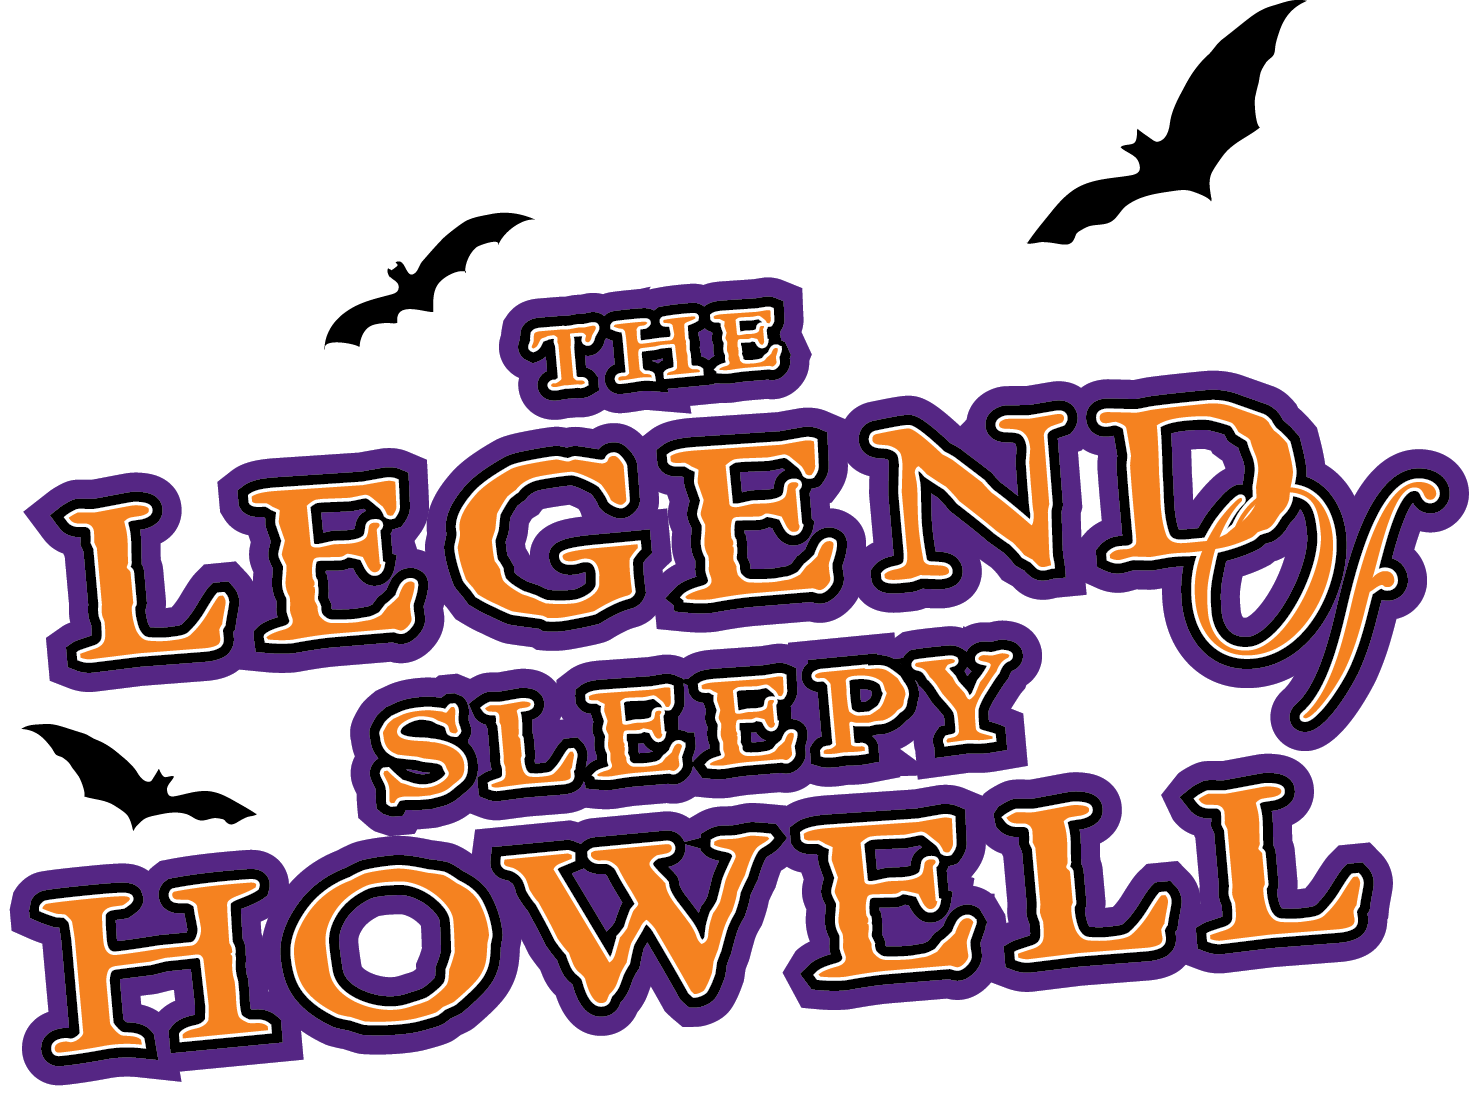 Legend of Sleepy Howell